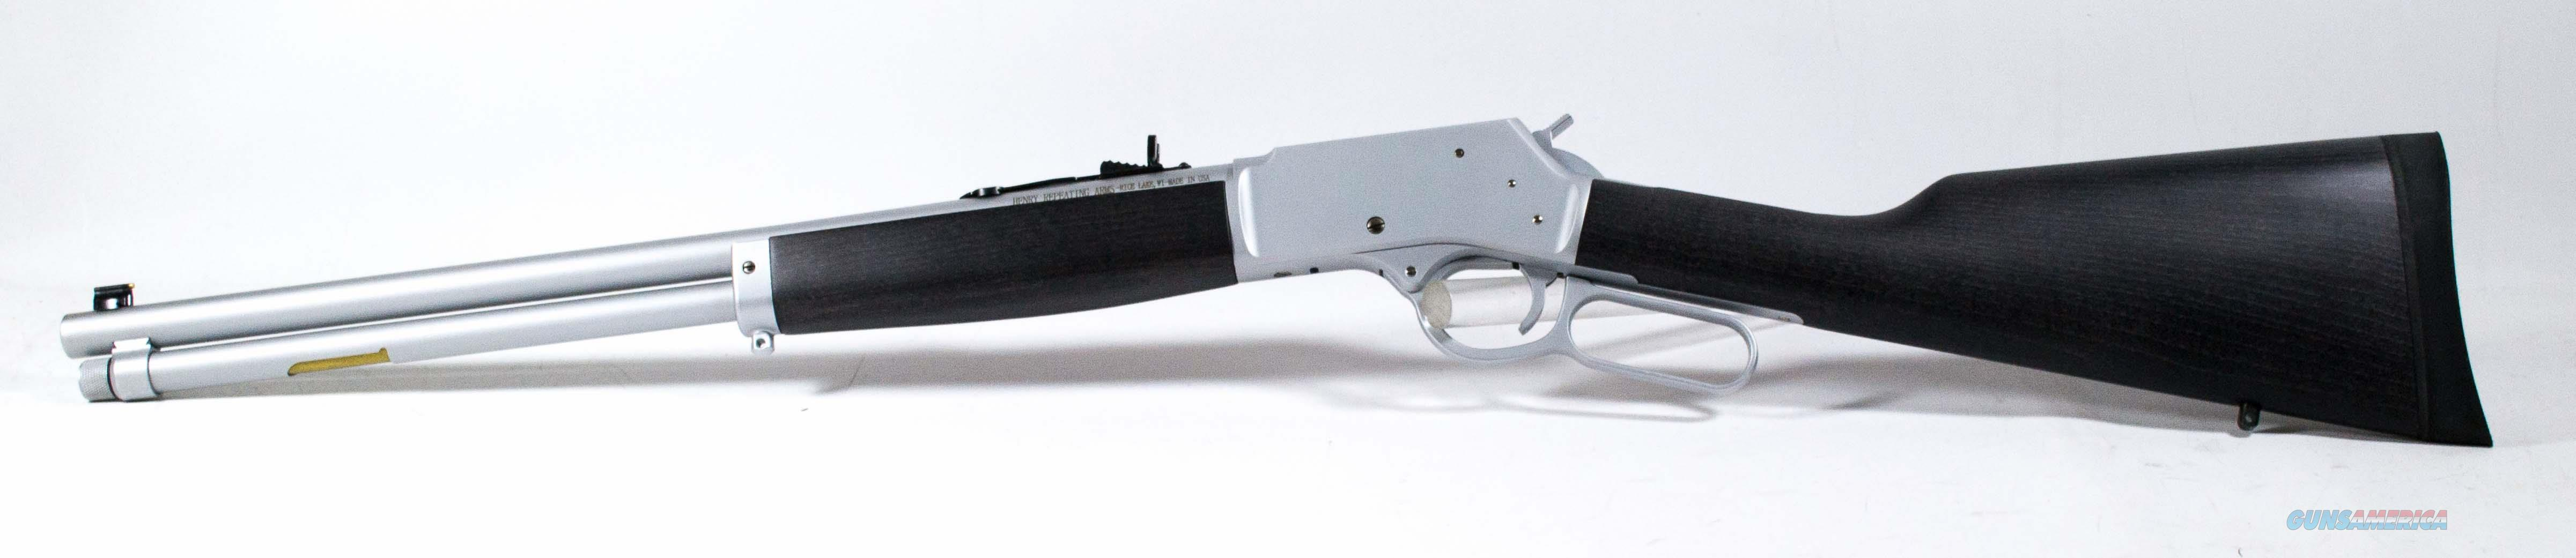 Henry Big Boy All Weather, .44 Magnum/Special  Guns > Rifles > Henry Rifle Company